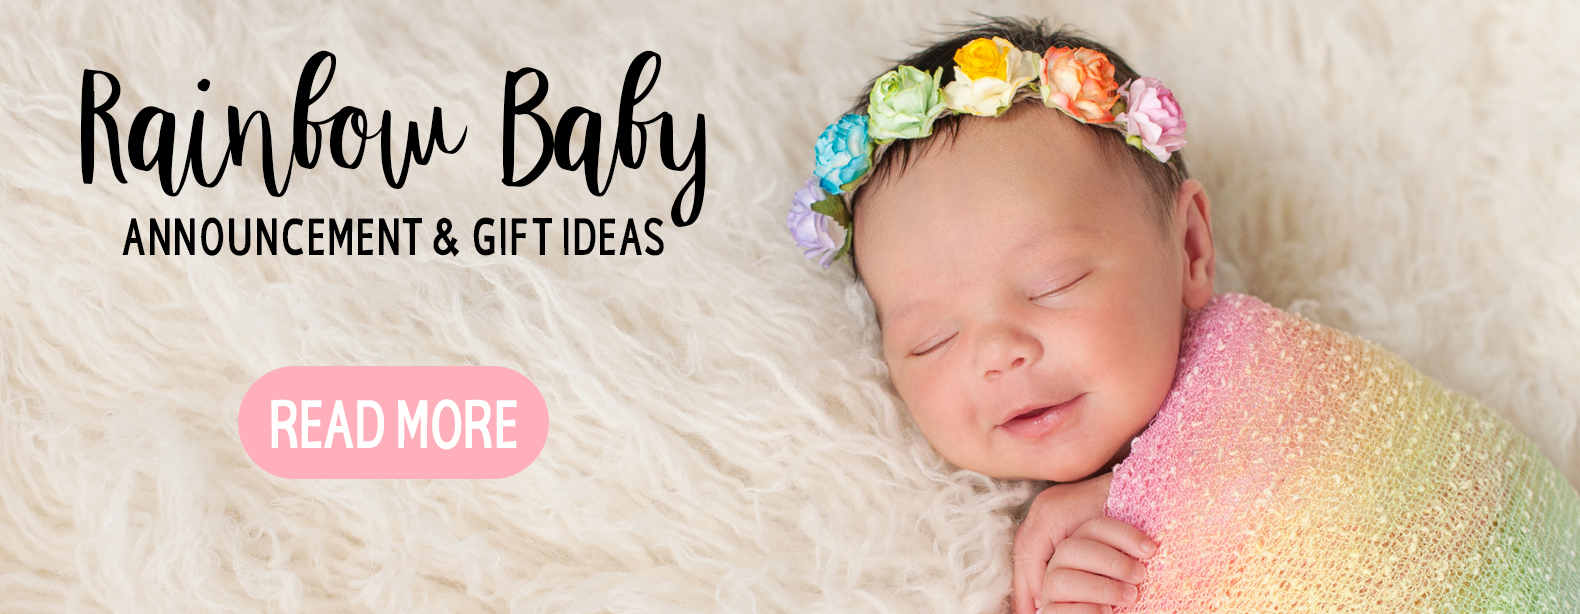 Rainbow Baby Announcement & Gift Ideas